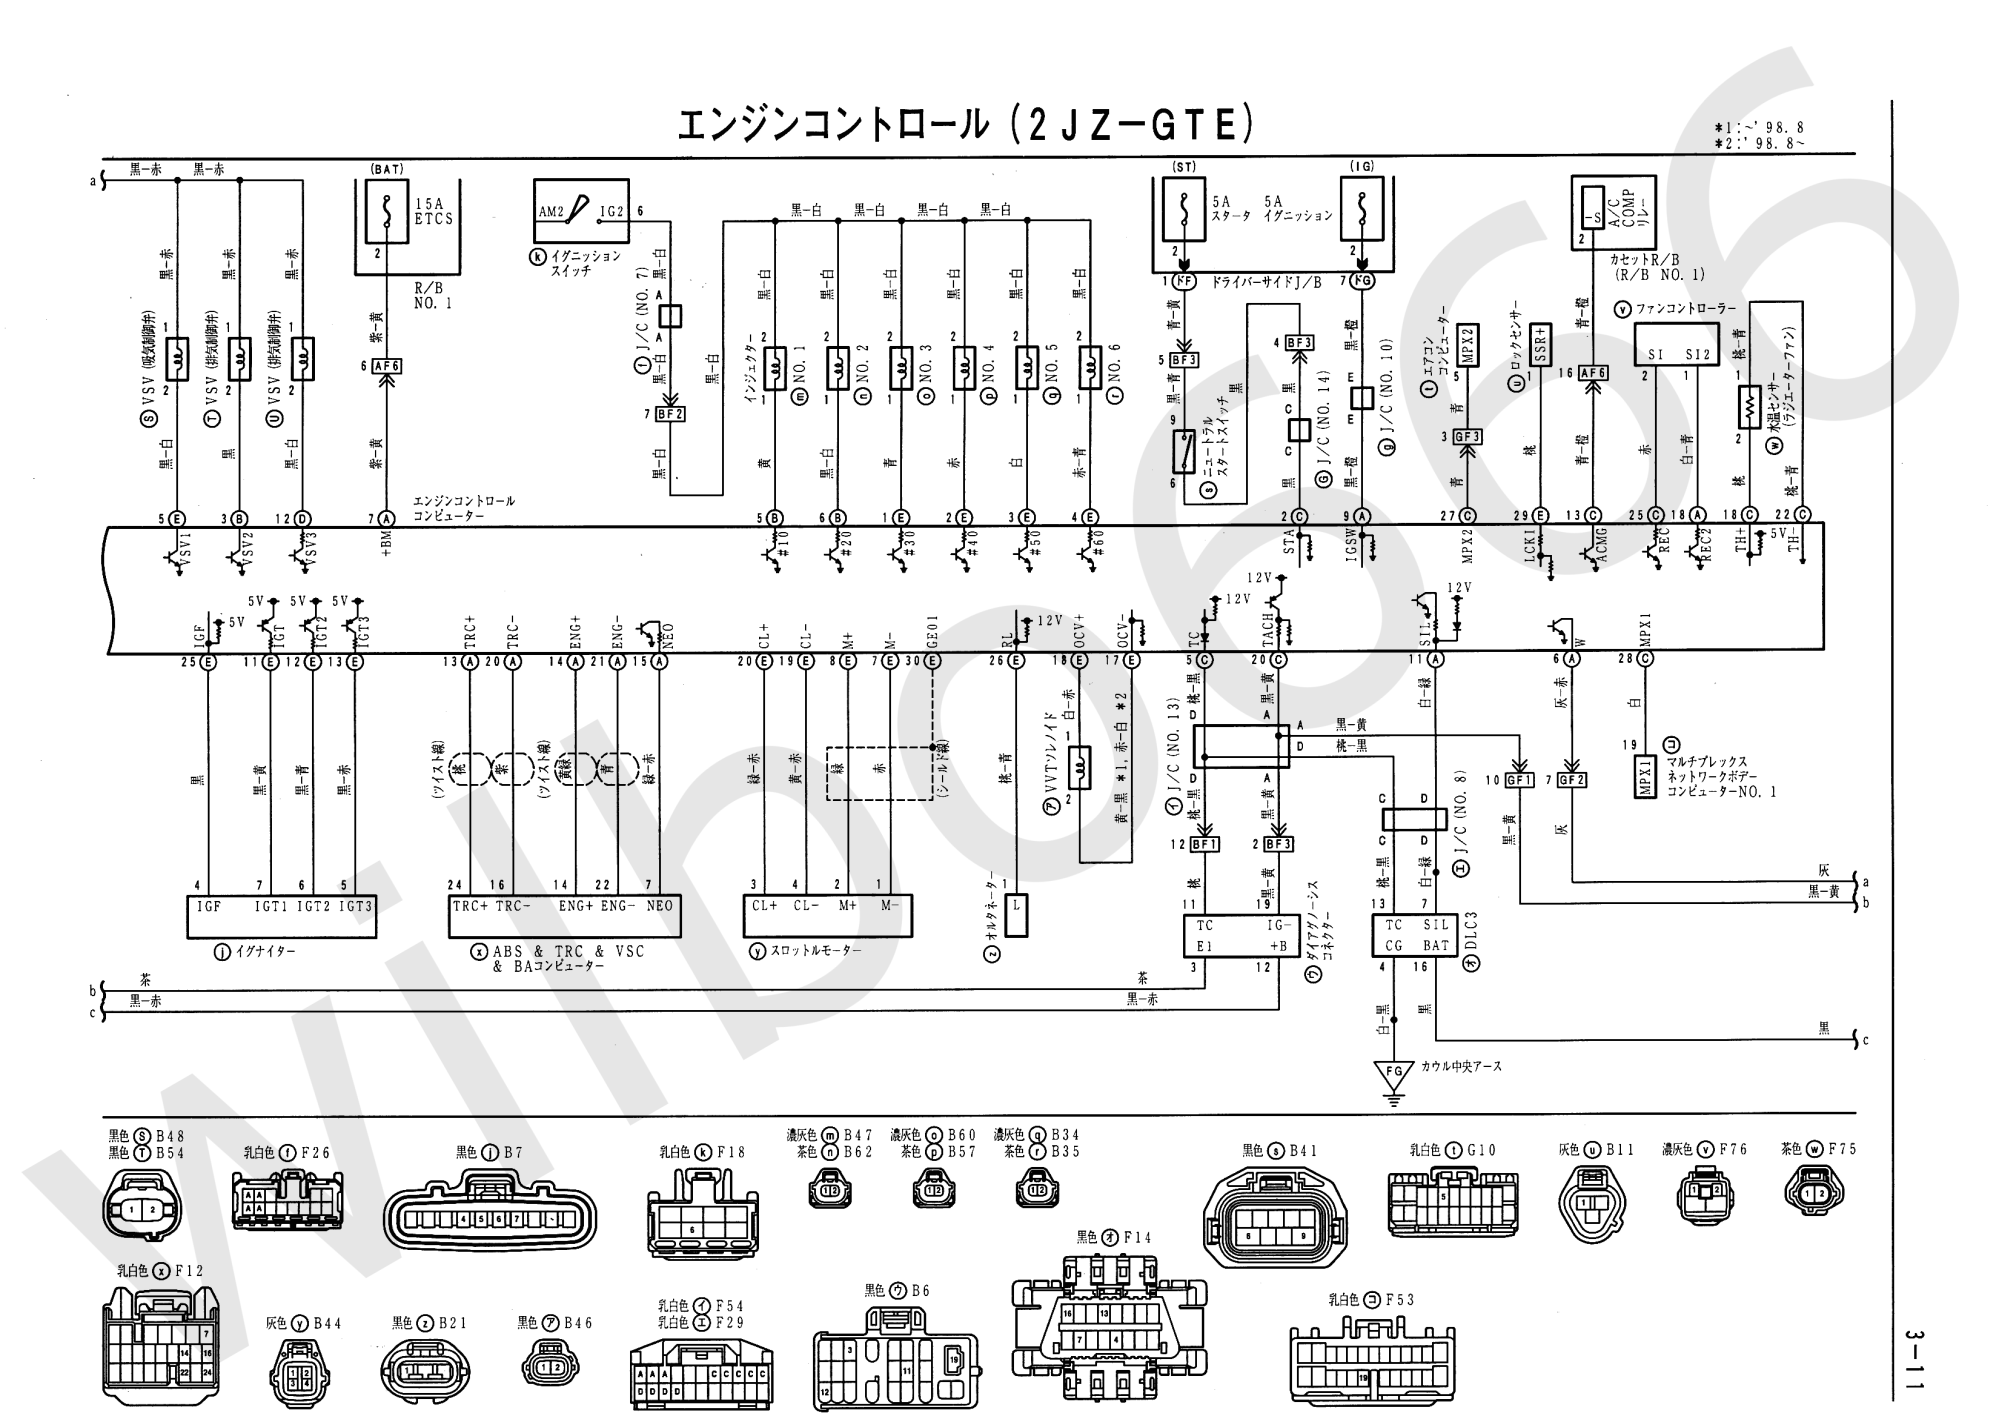 hight resolution of wilbo666 2jz gte vvti jzs161 aristo engine wiring 2006 mitsubishi eclipse ecu diagram jzs161 toyota aristo